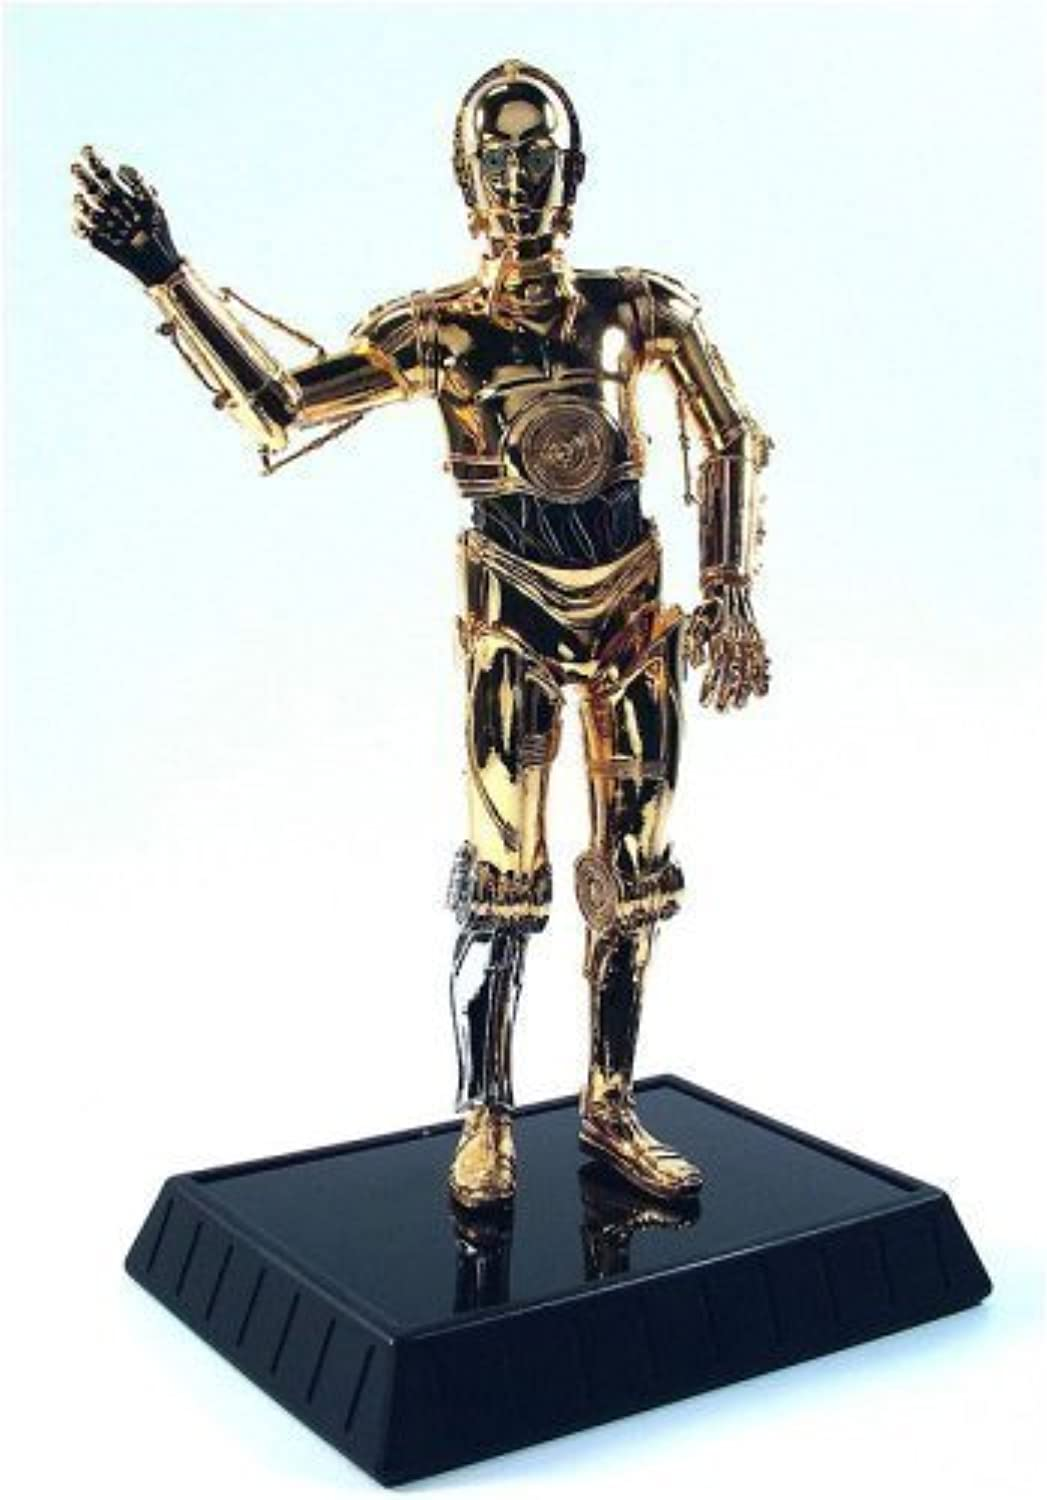 C3PO Statue  Limited Edition  Gentle Giant Giant Giant  Star Wars by Gentle Giant 94446a